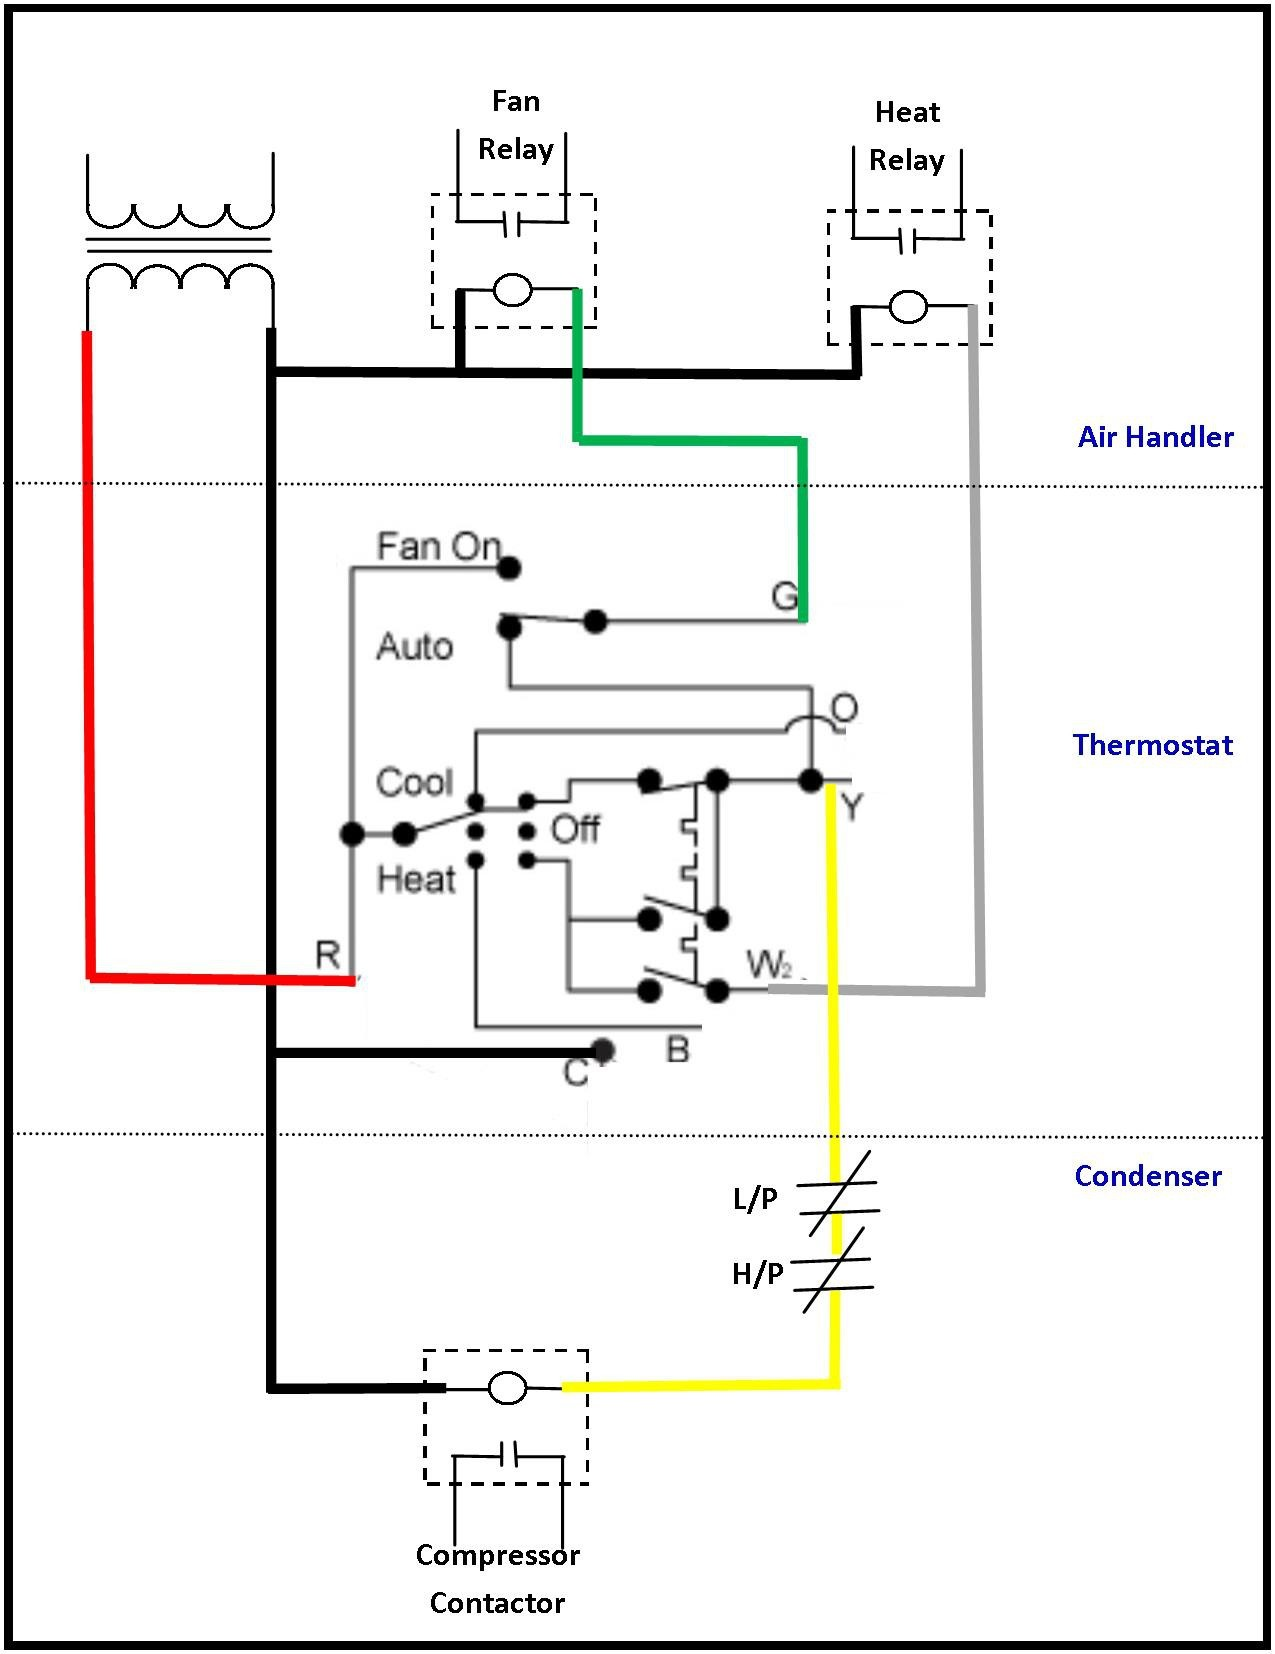 Gas Furnace Parts Diagram Basic Gas Furnace Wiring Diagram Of Gas Furnace Parts Diagram